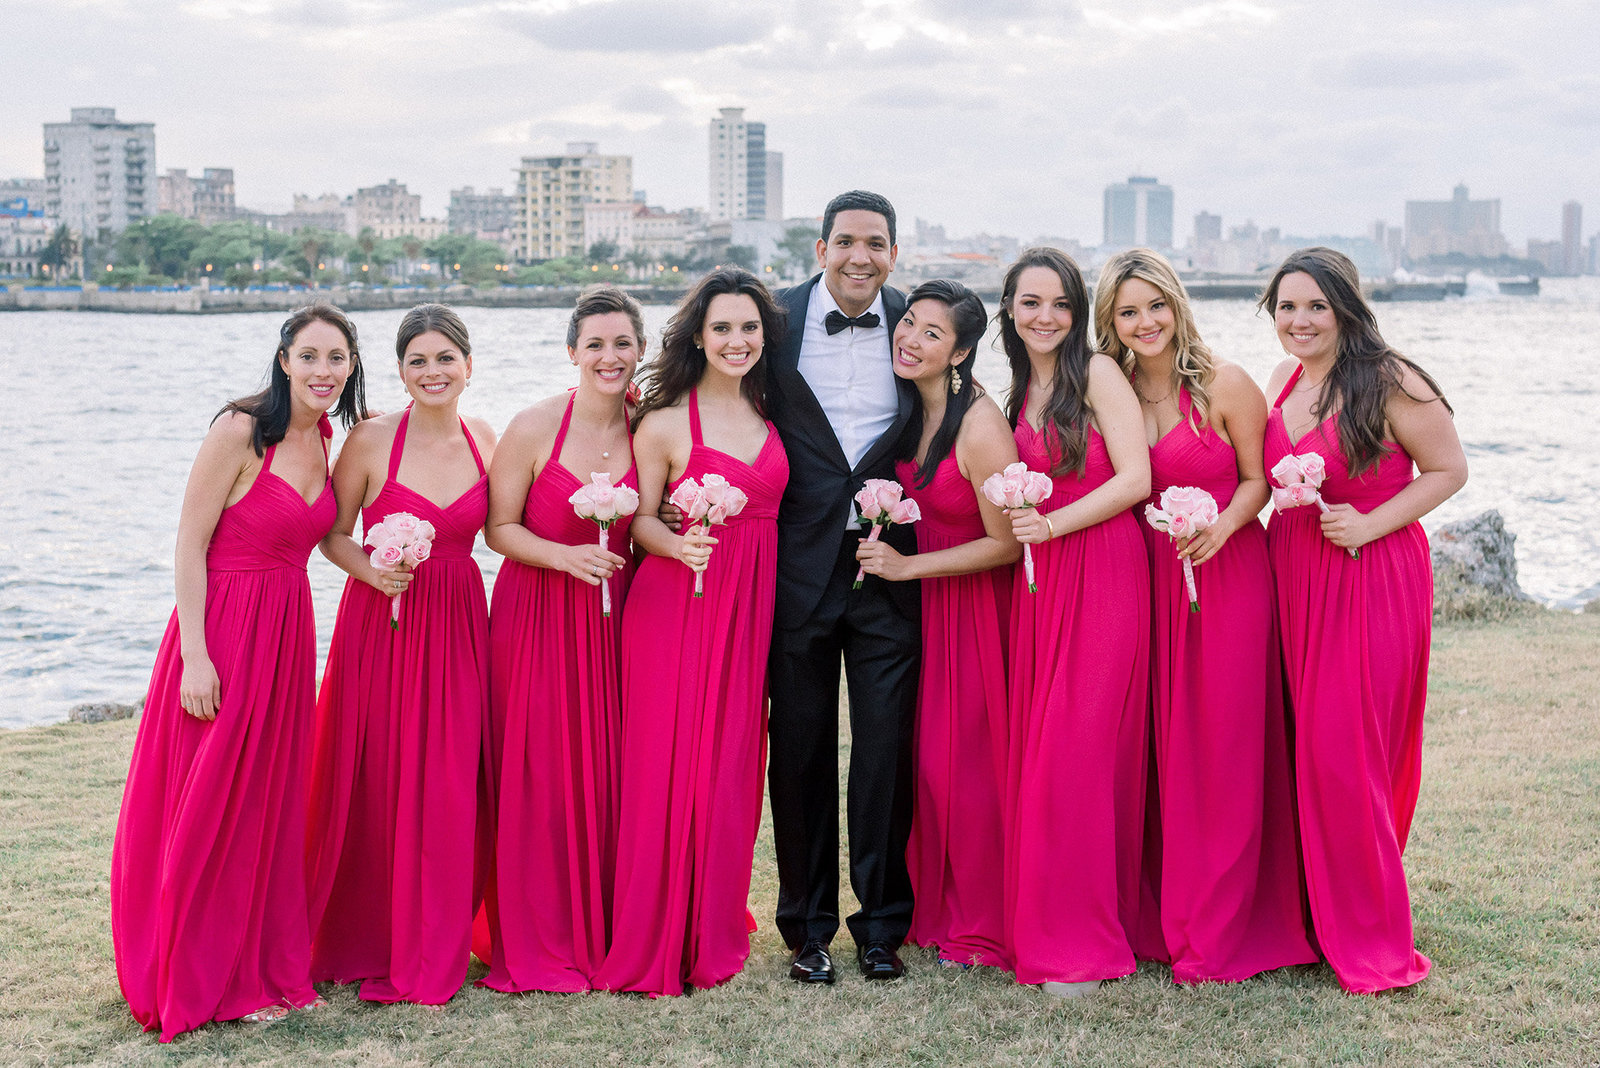 20150328-Pura-Soul-Photo-Cuba-Wedding-76